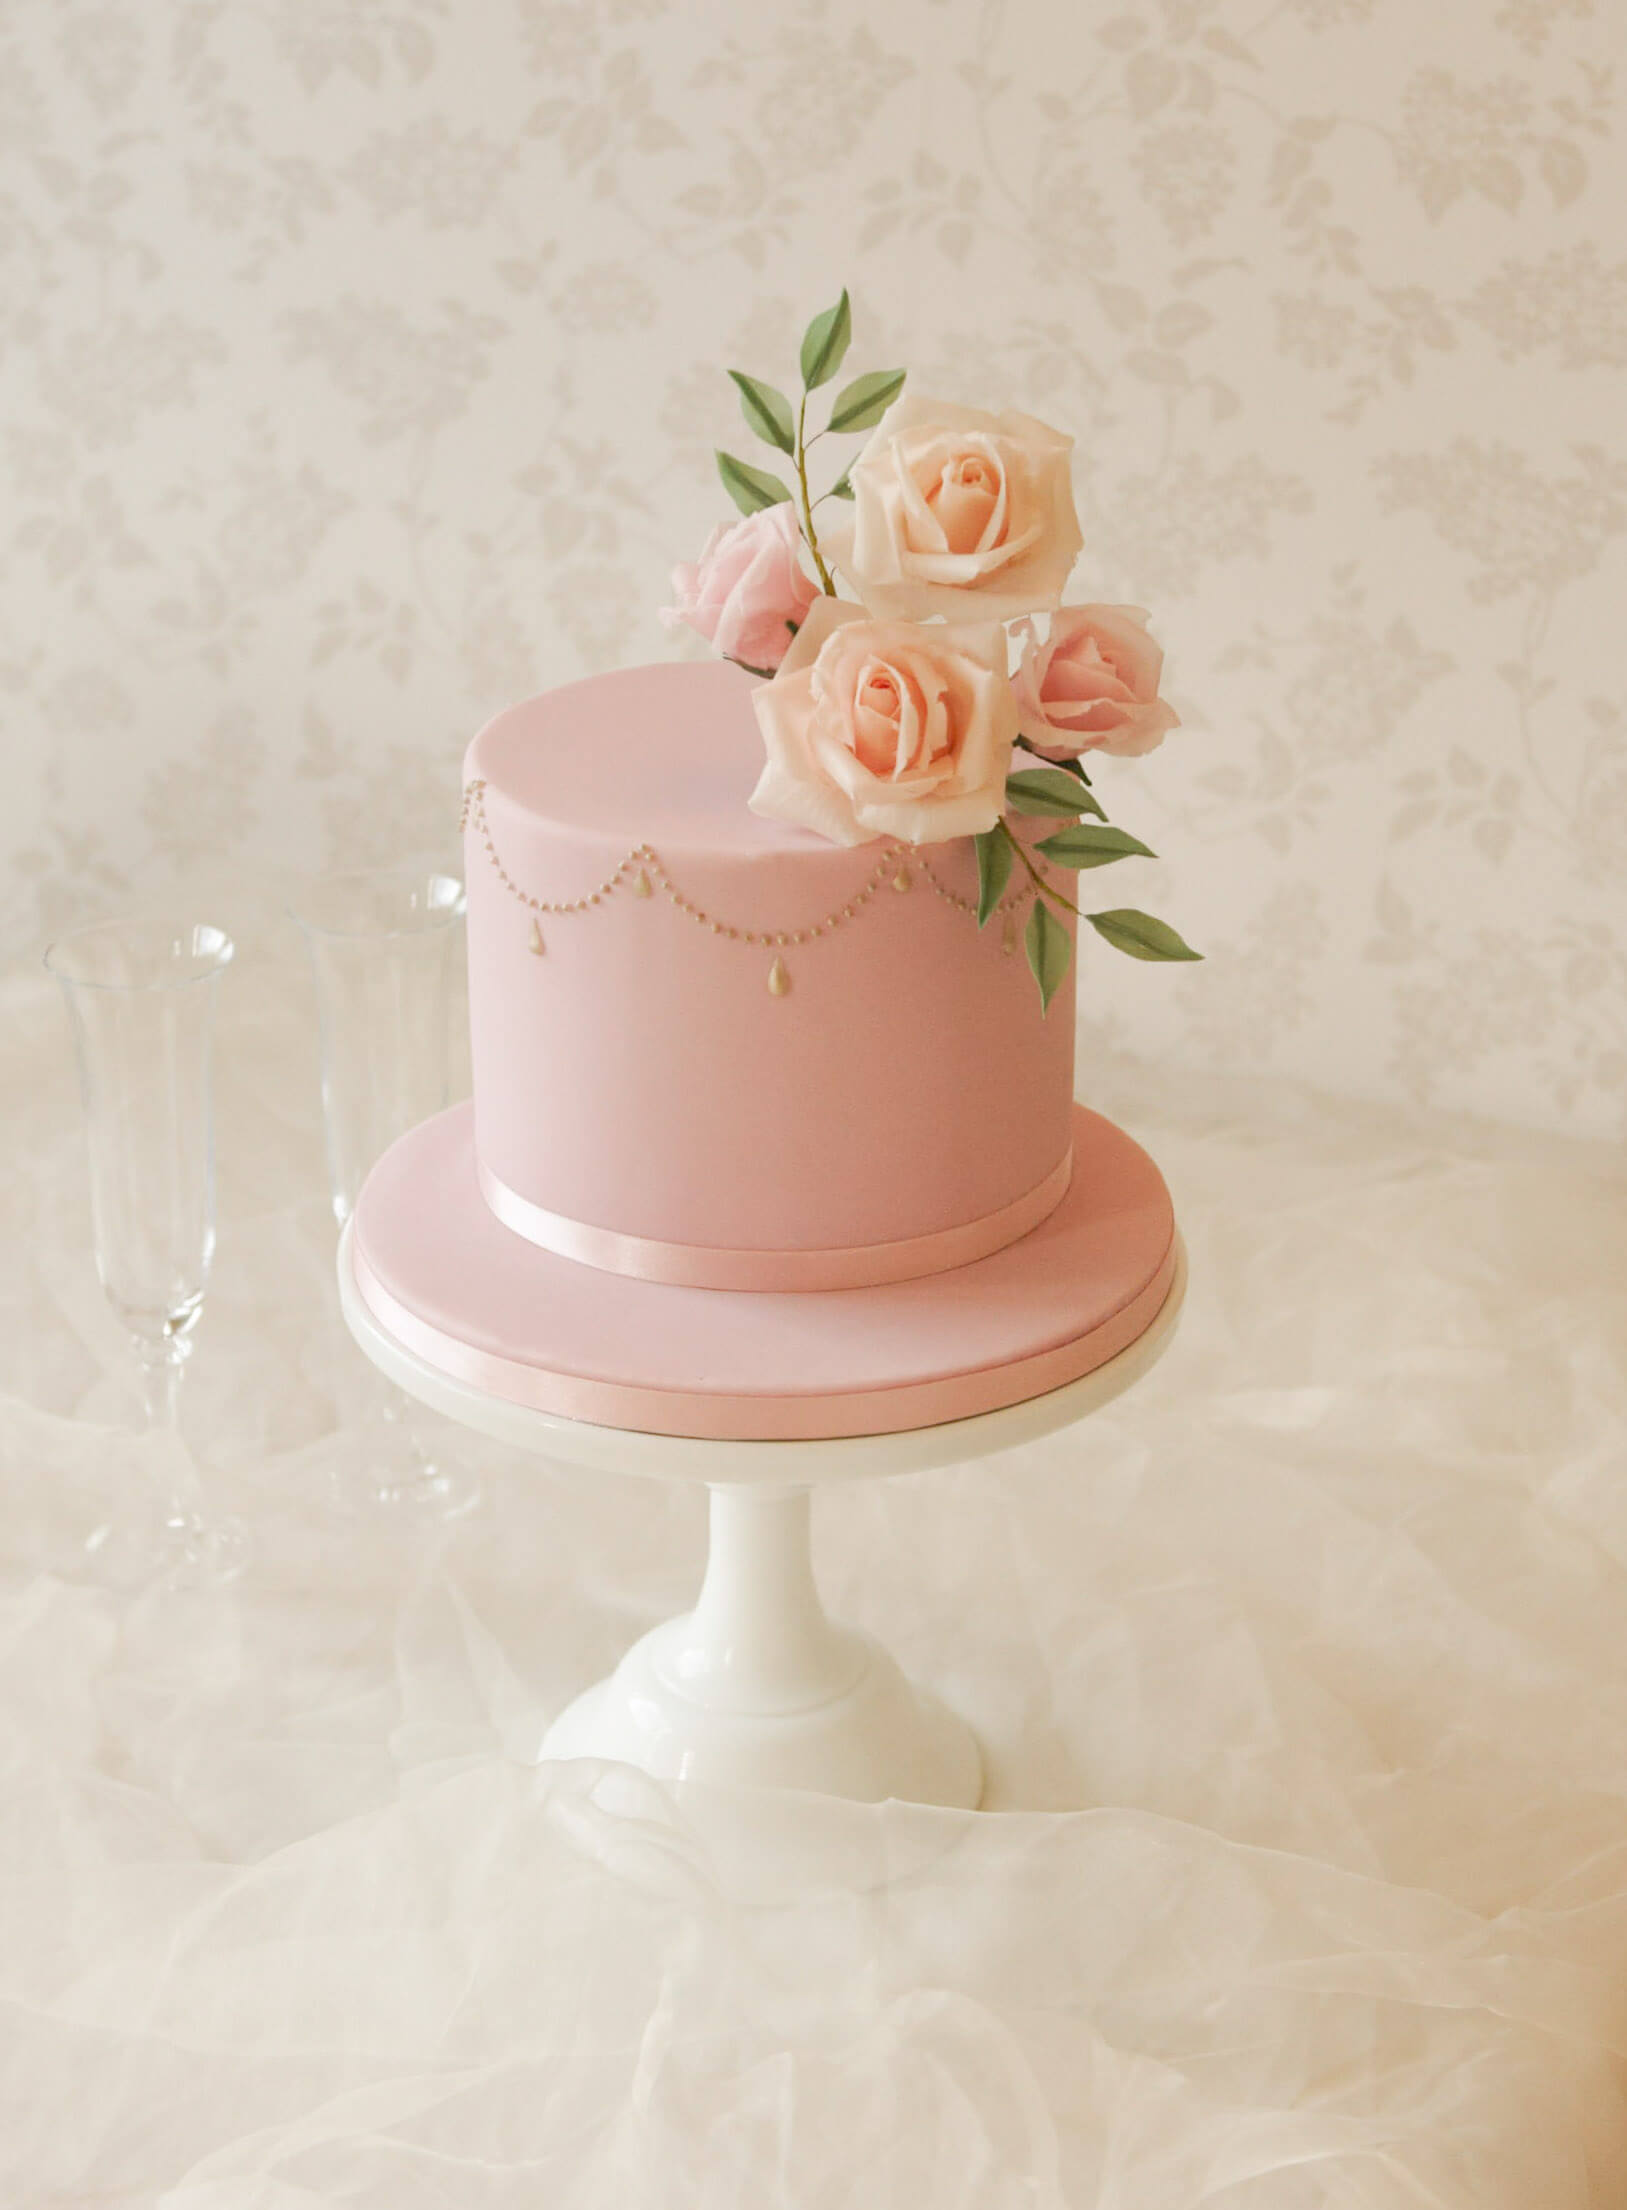 Luxury Celebration Cakes In Buckinghamshire The Rose Cake Parlour